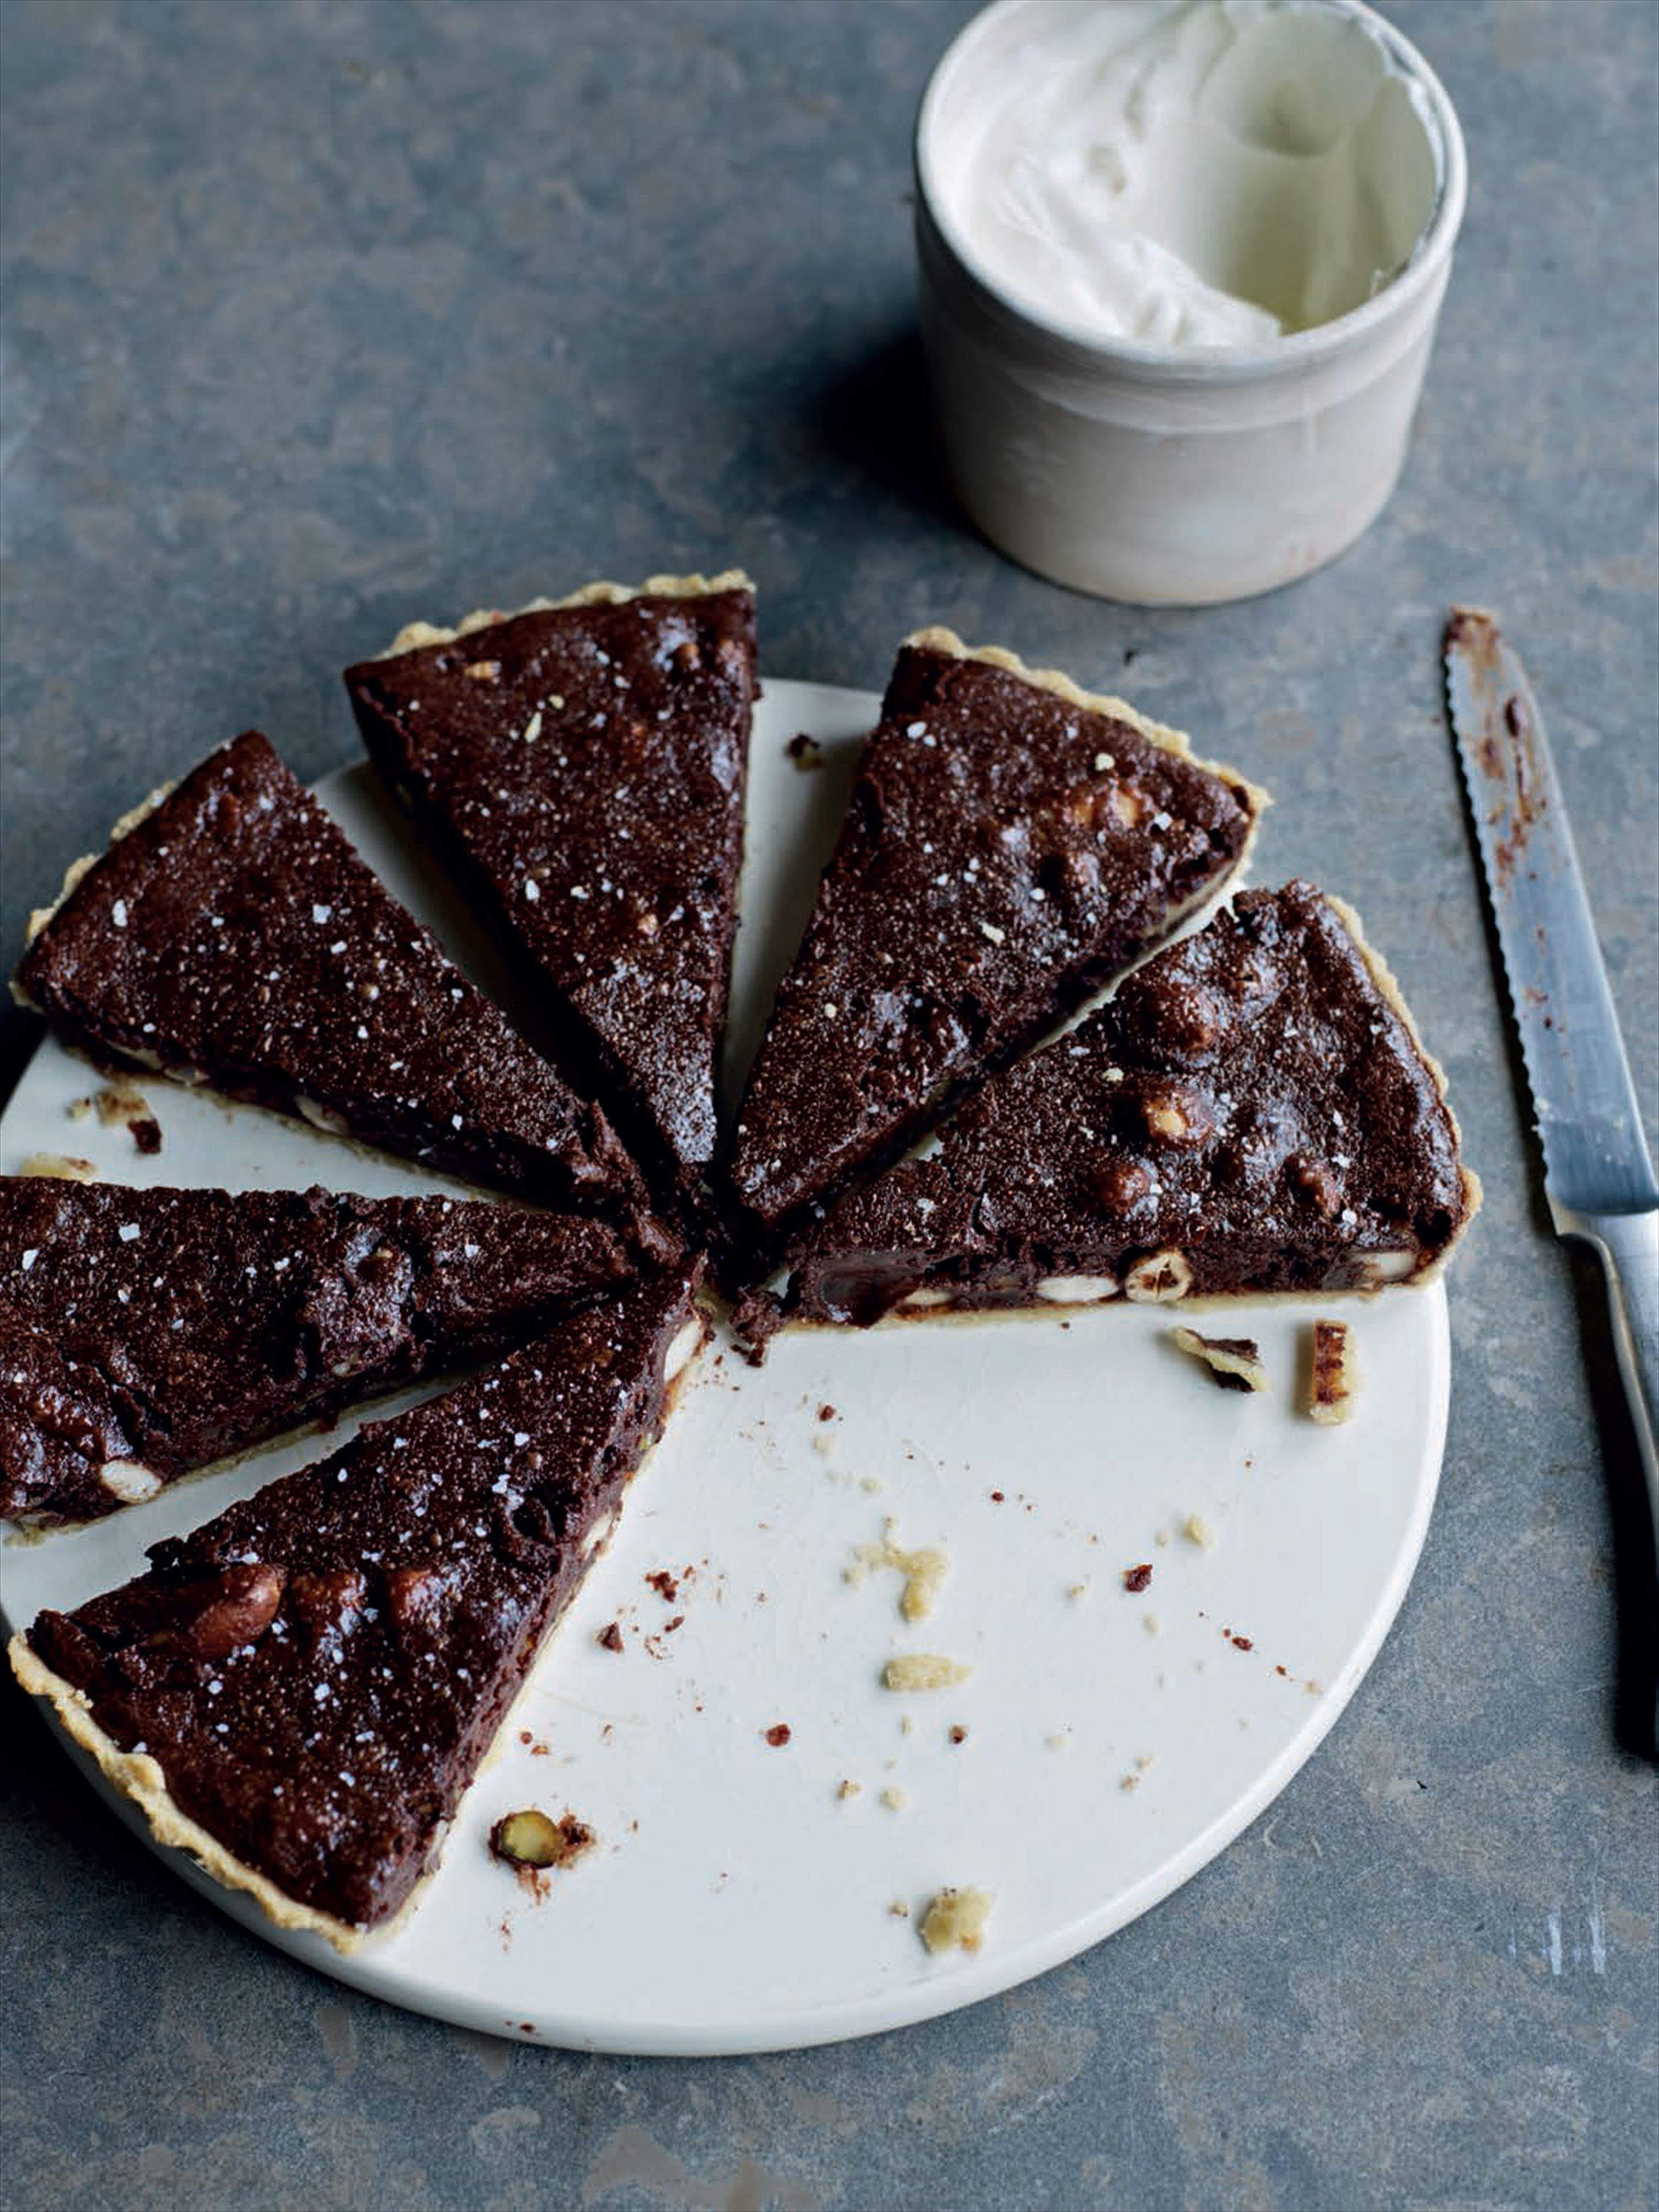 Spiced chocolate and nut tart